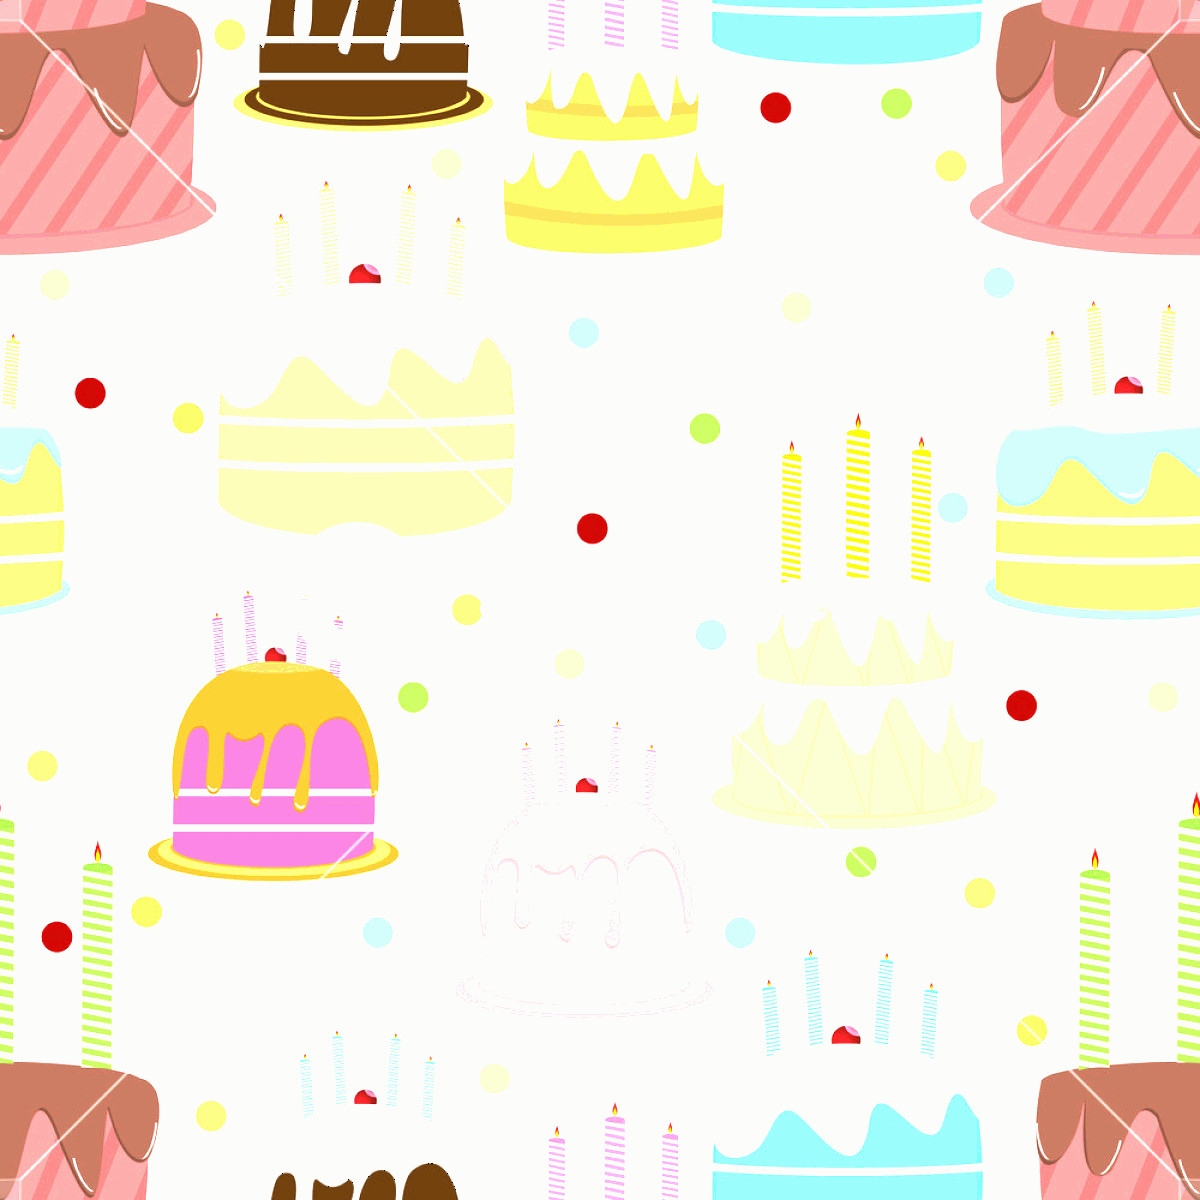 Vector Abstract Art Cake: Abstract Colorful Seamless Pattern With Cake Vector Illustration Rzeqleixdzjgqowk